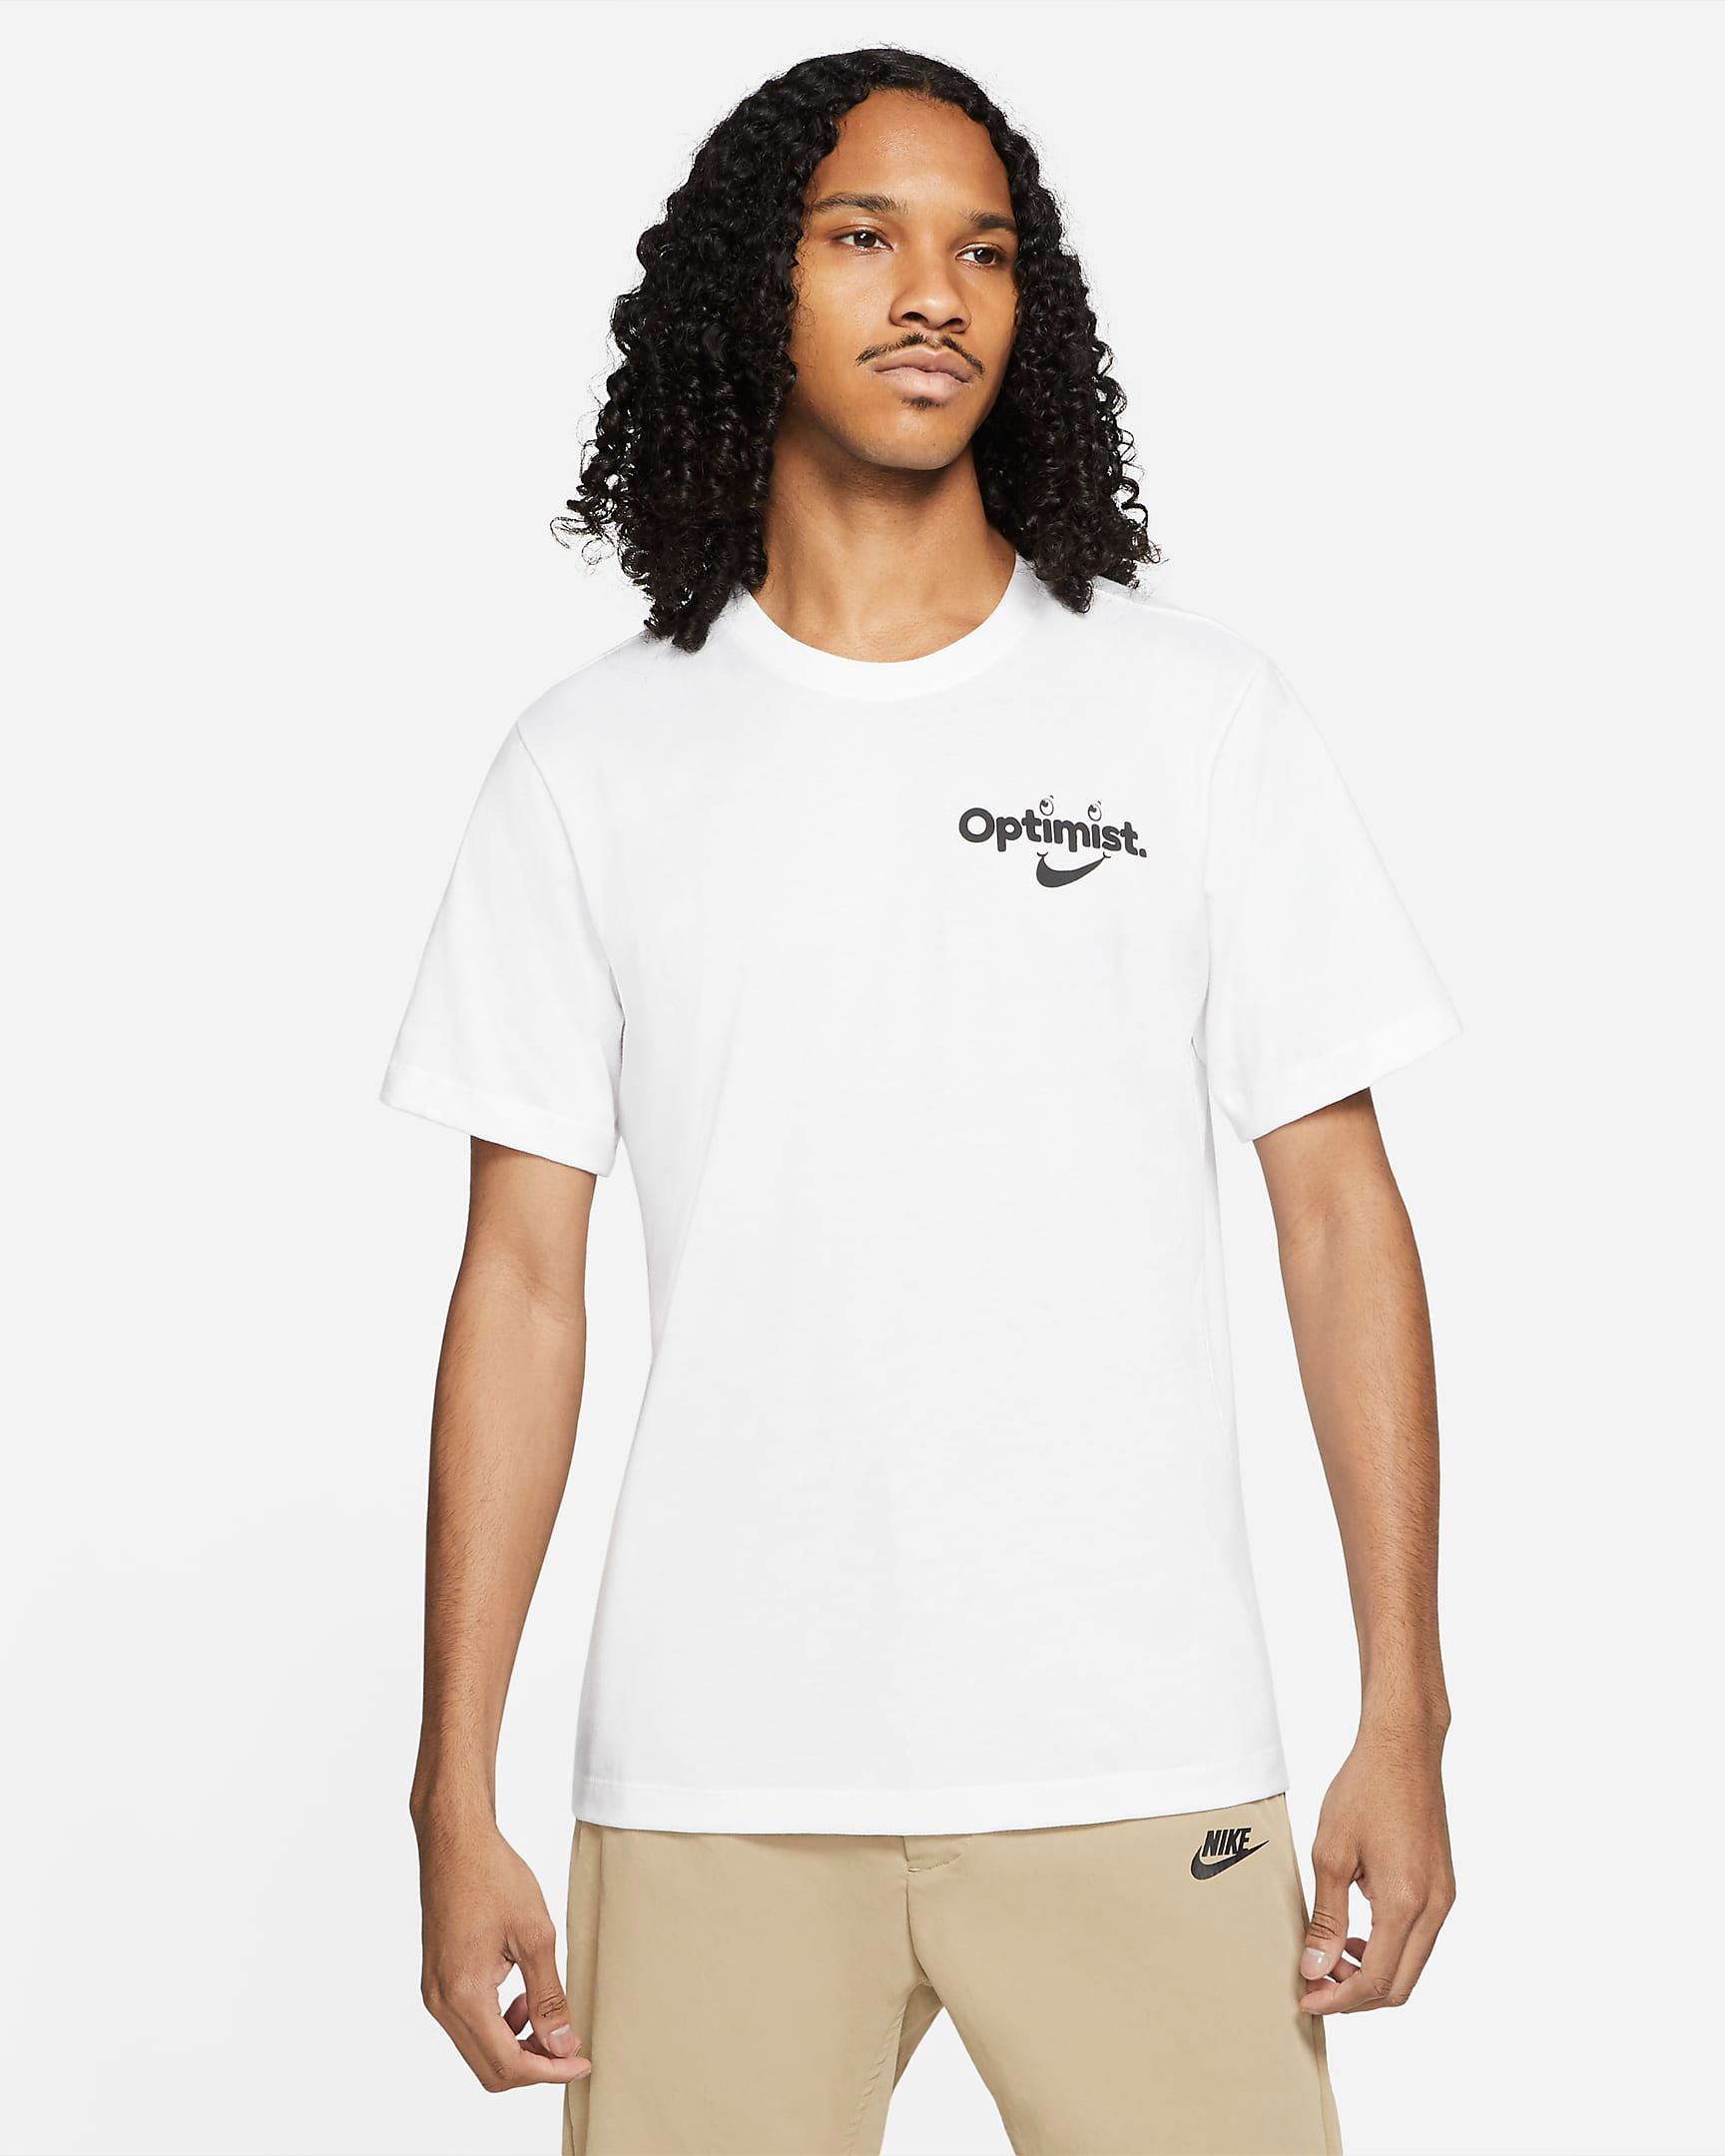 nike-optimist-shirt-white-black-1